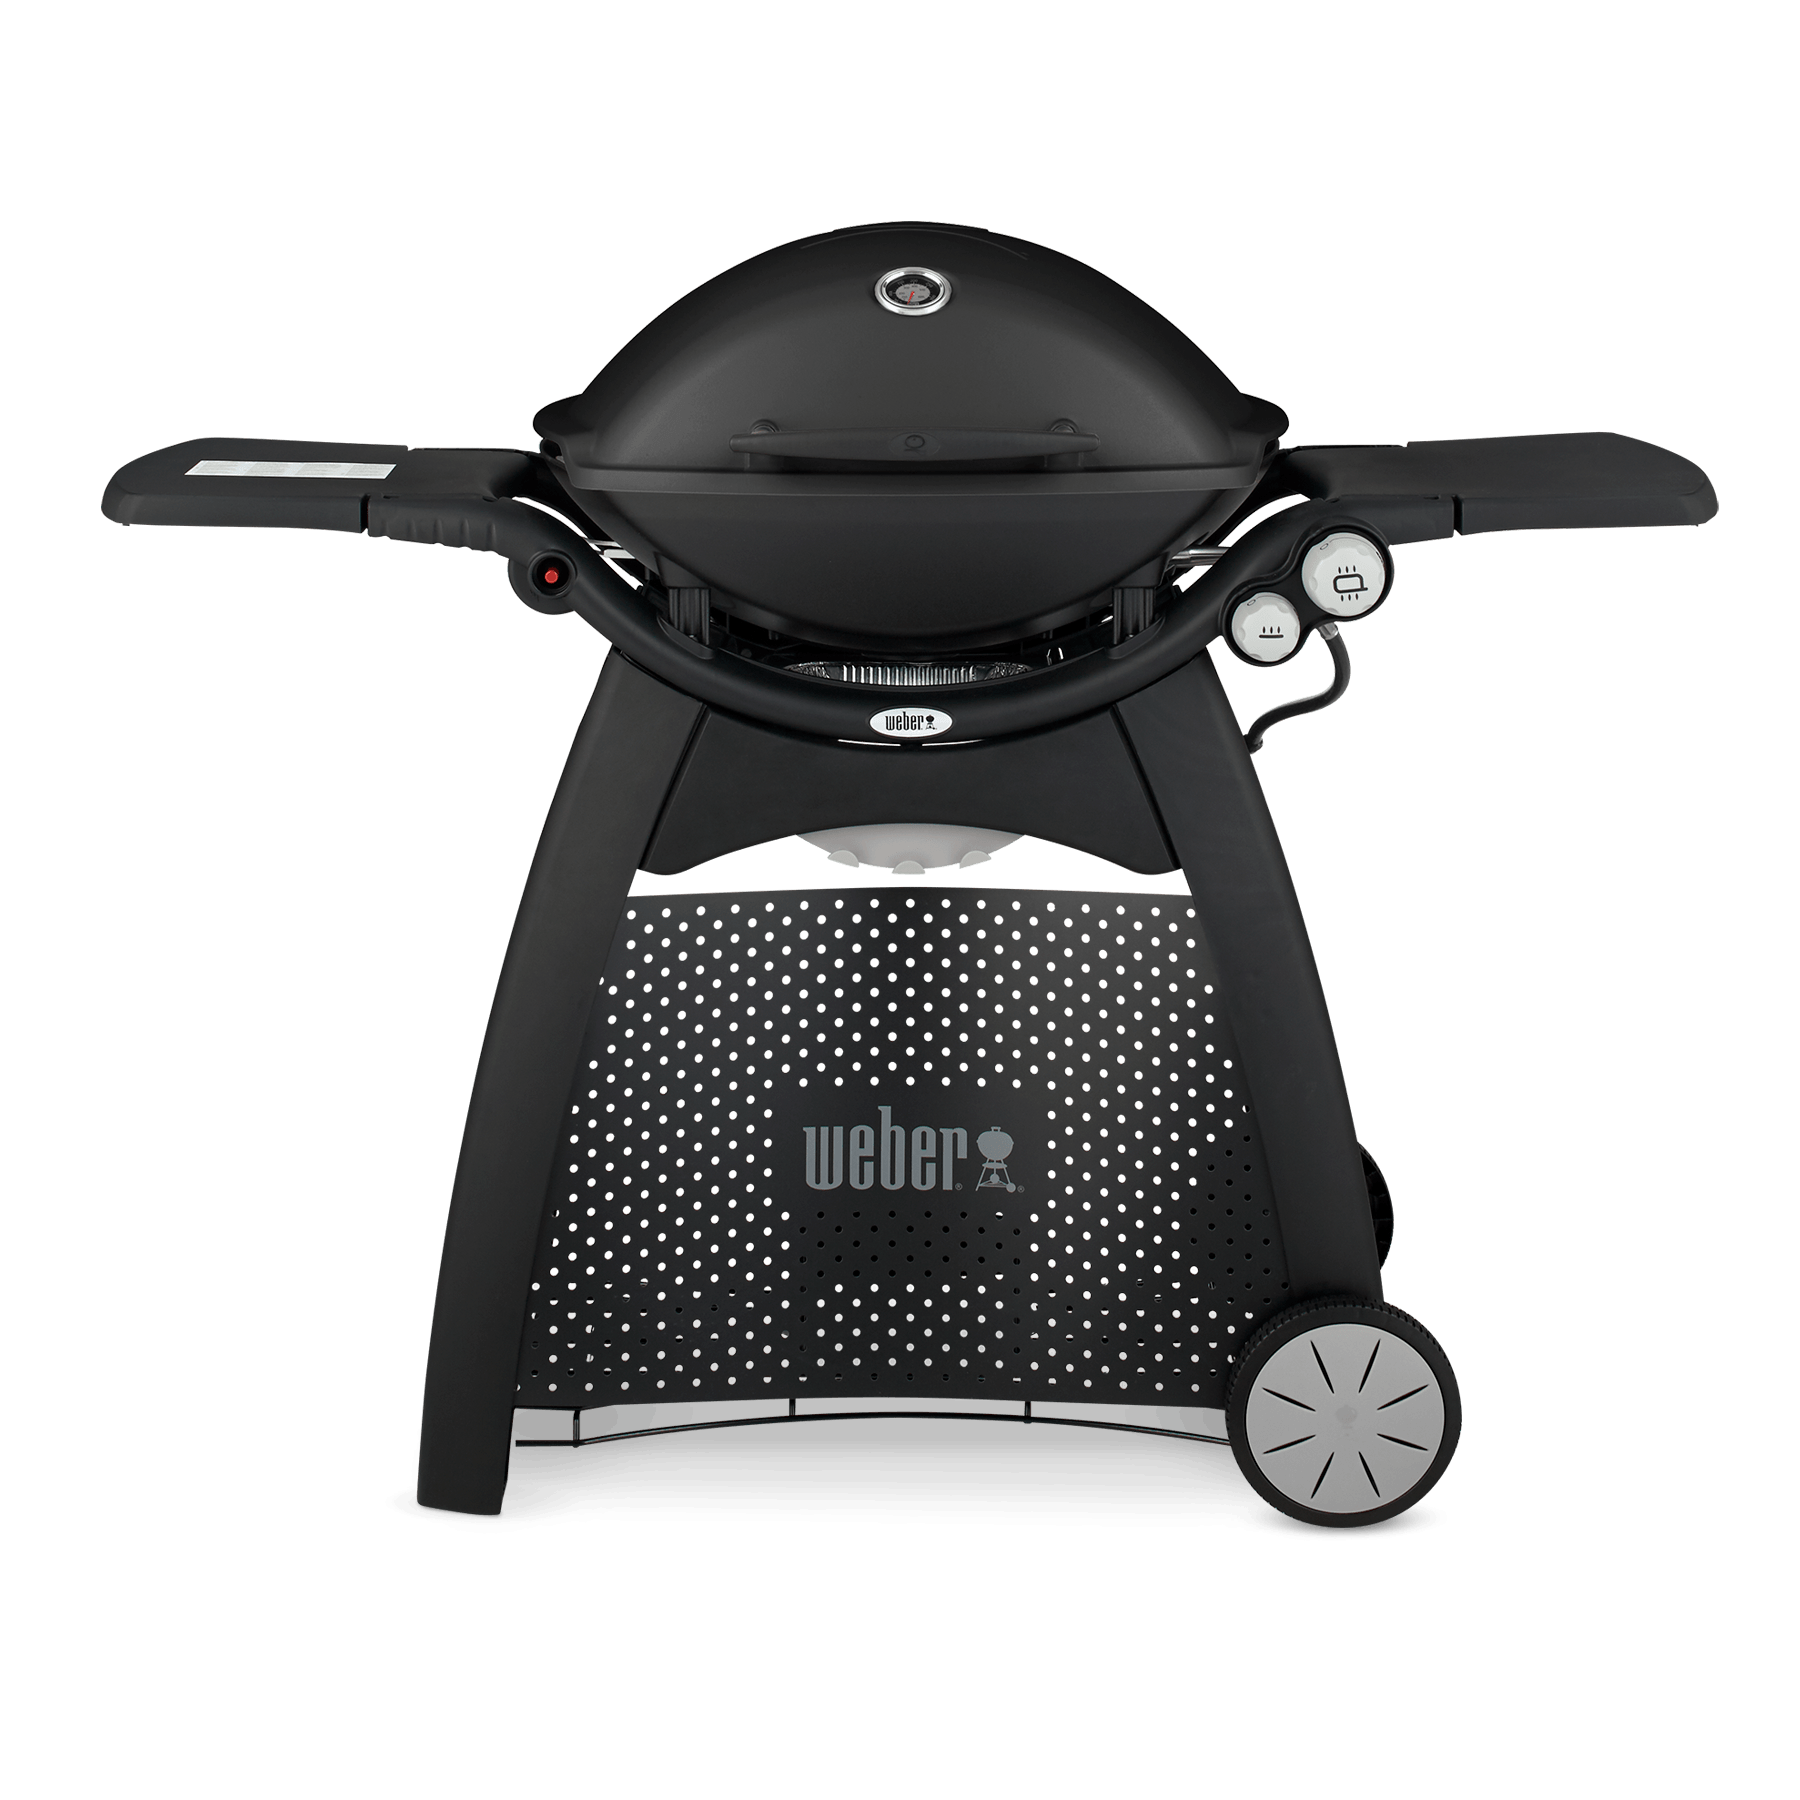 Weber Handleiding Weber Q 3000 Gasbarbecue Q Serie Gasbarbecues